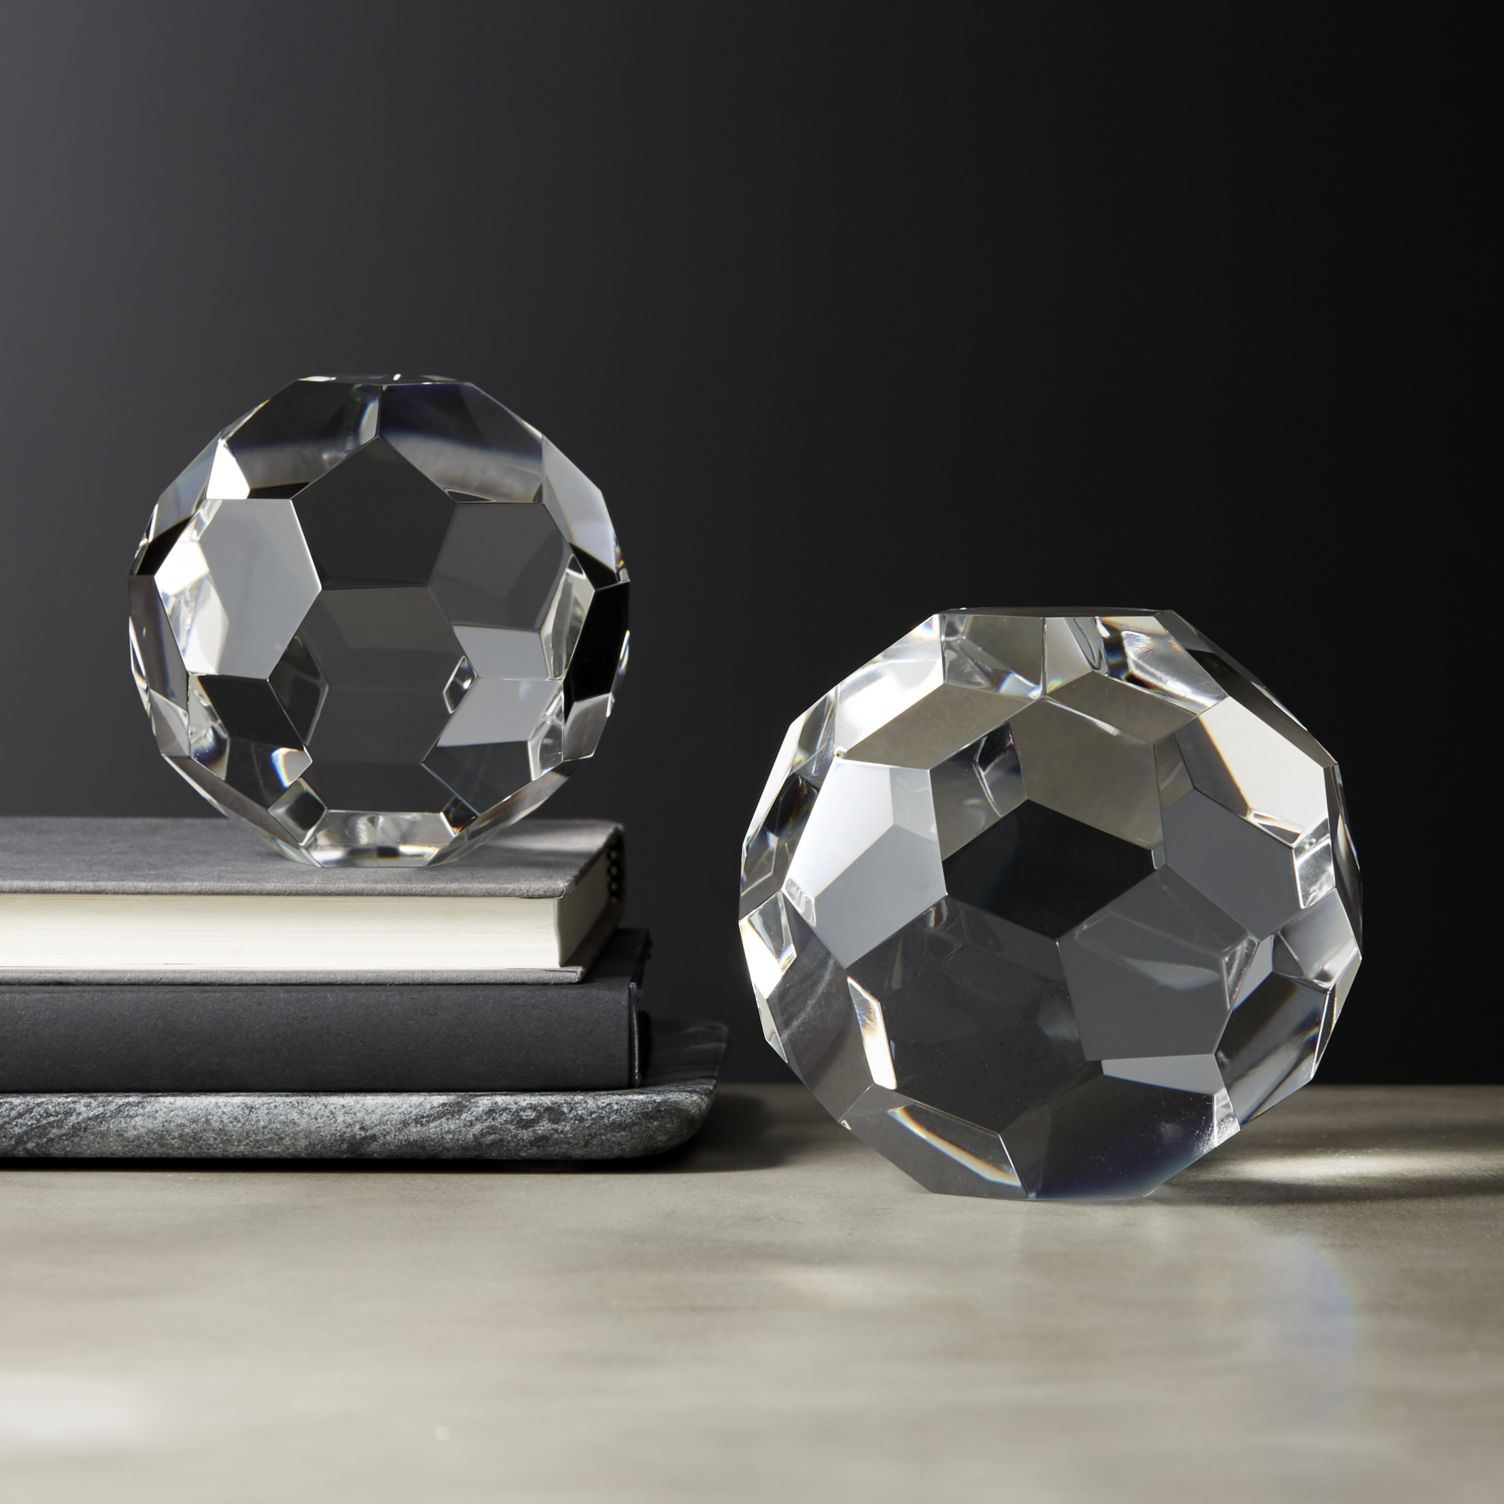 Crystal orbs with facets